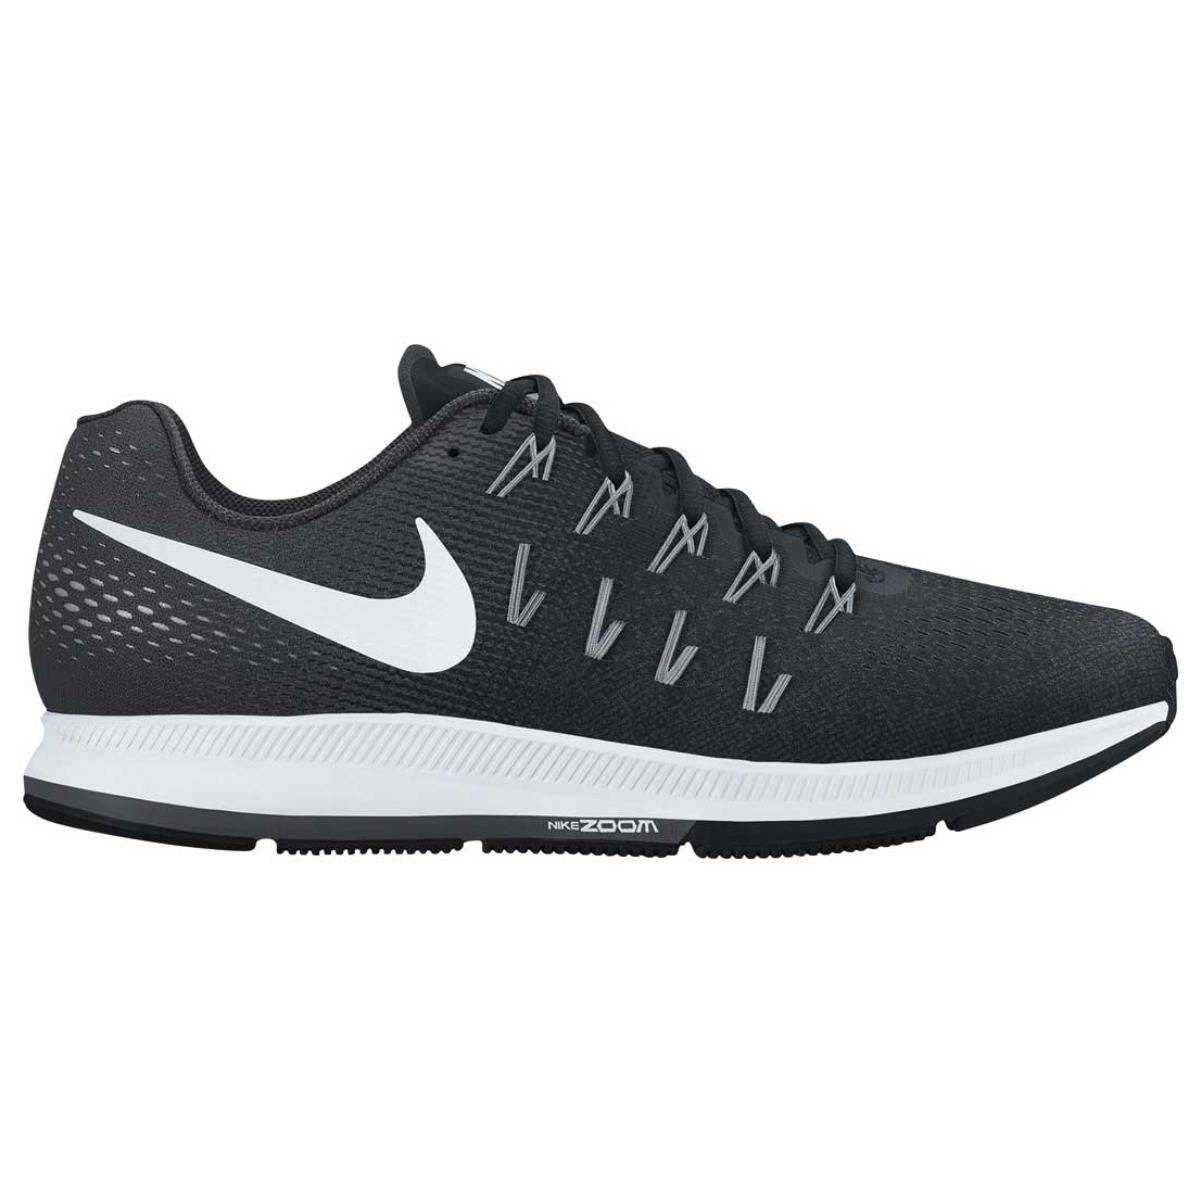 Nike High Arch Running Shoes